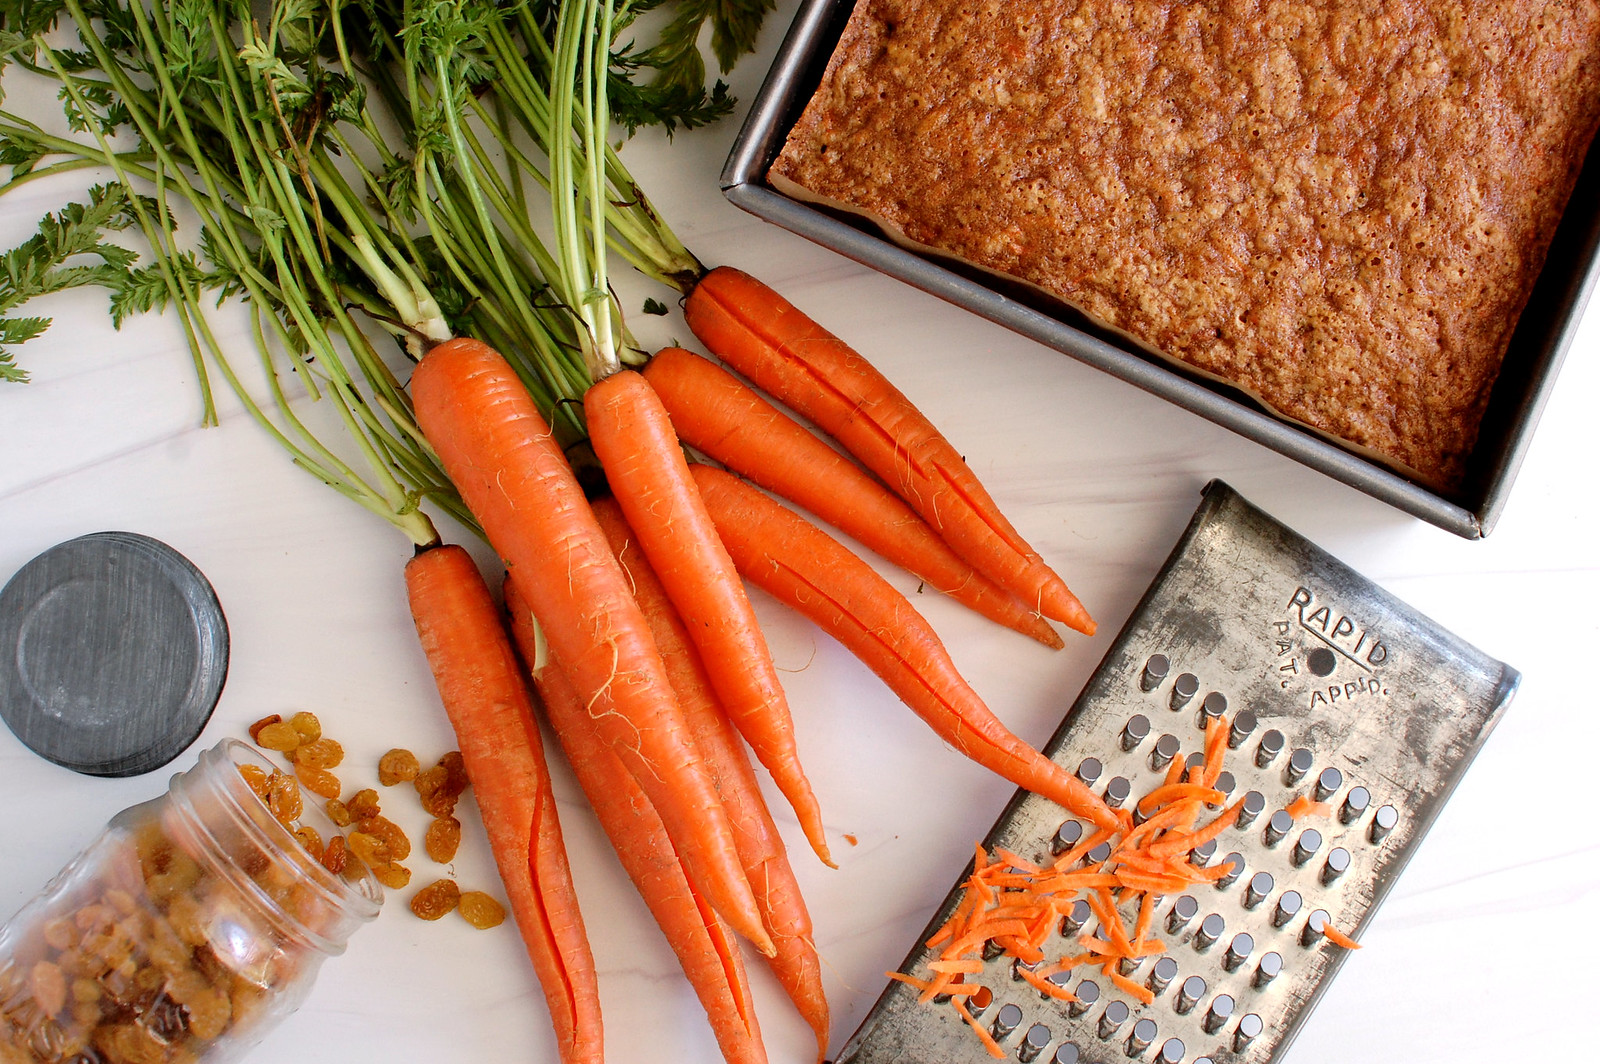 candied carrot peel rosette decoration ingredients cake carrots sugar